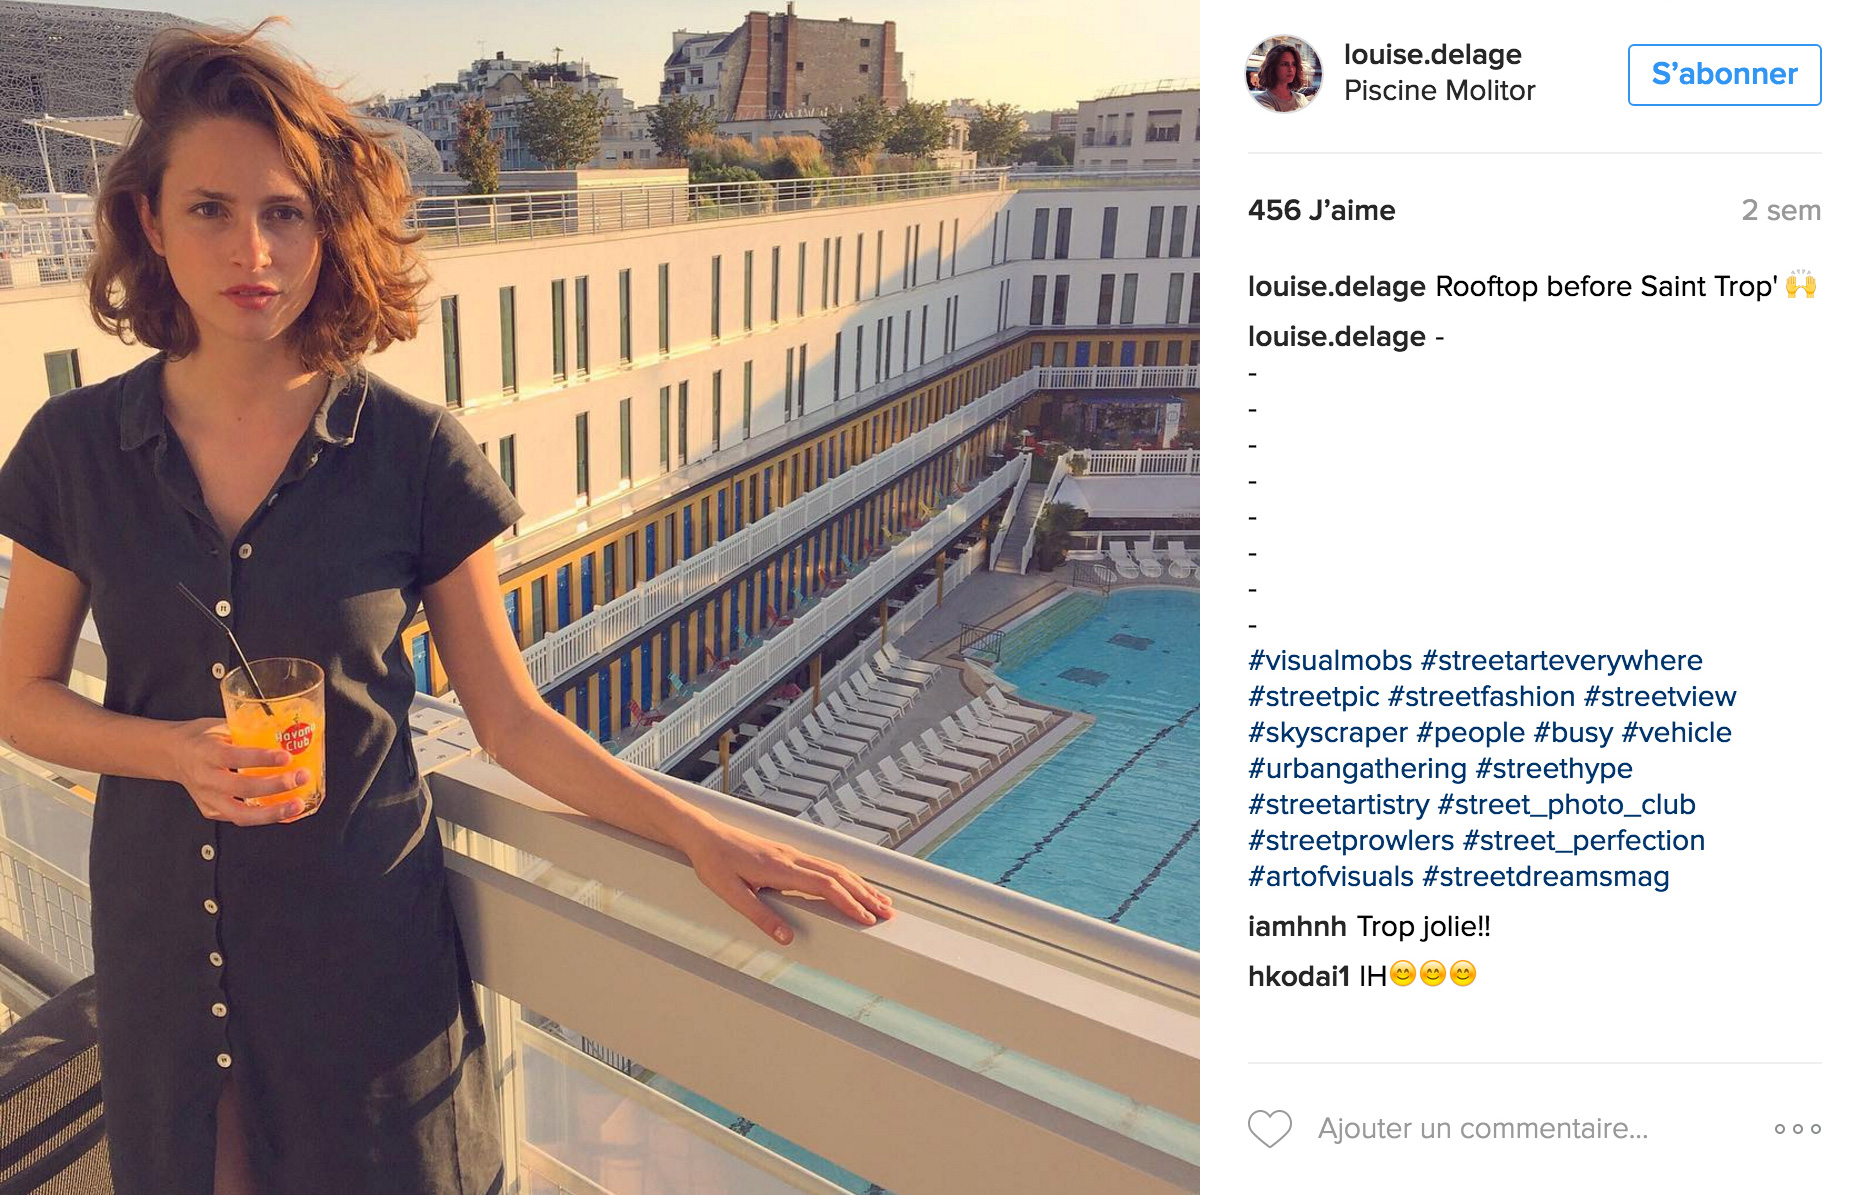 Who Is Louise Delage? – The Instagram Campaign by Addict Aide